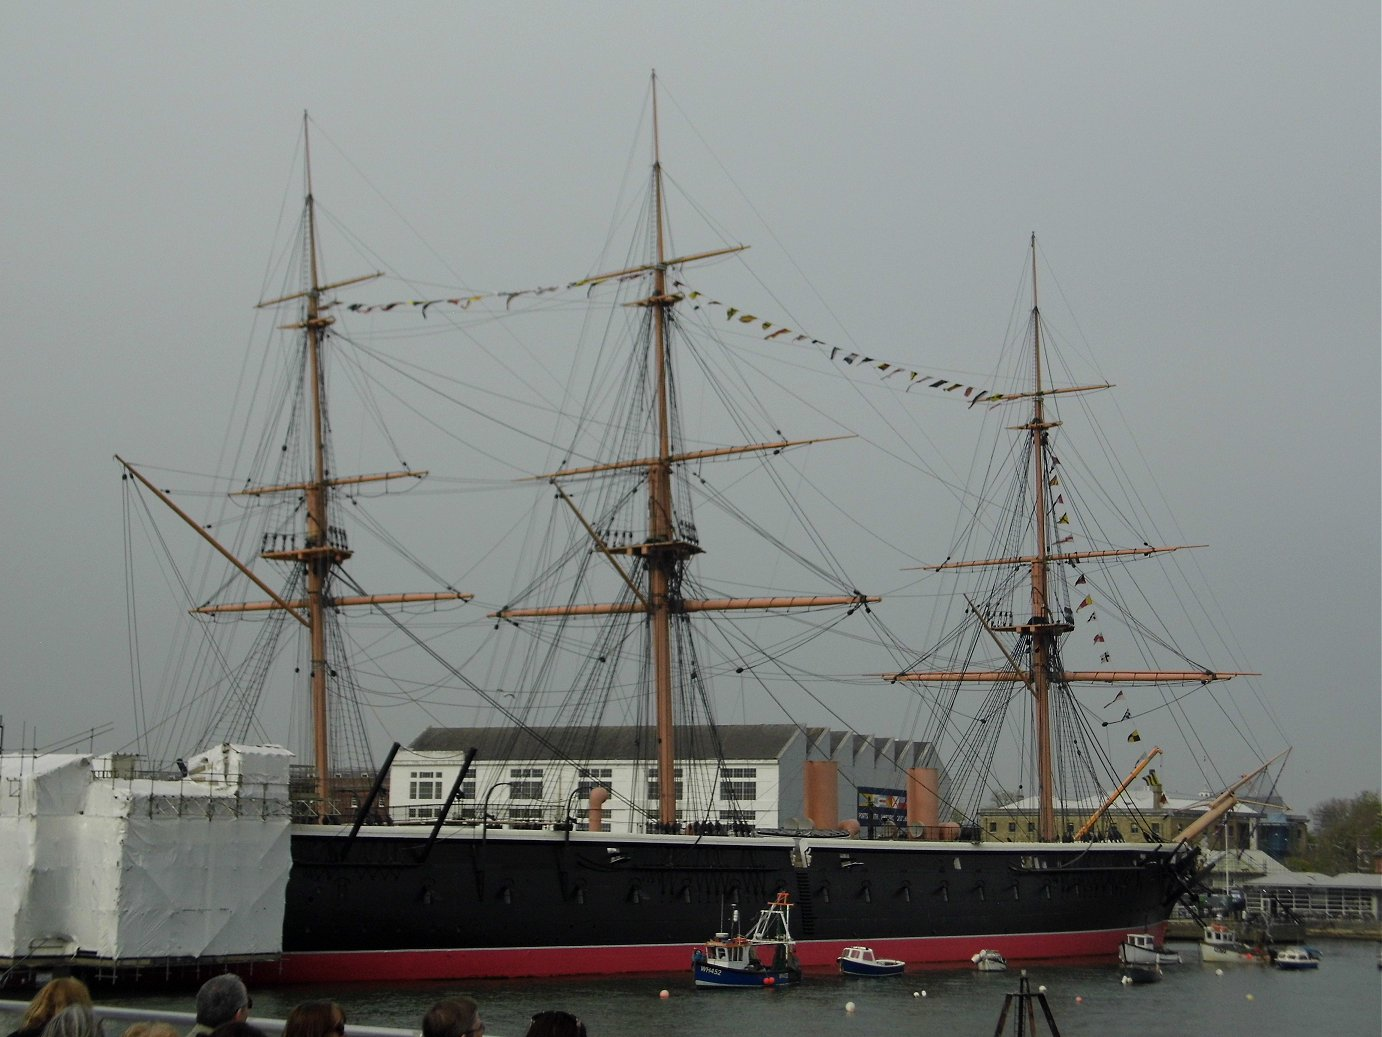 HMS warrior, Portsmouth, Tuesday 23/04/2019.